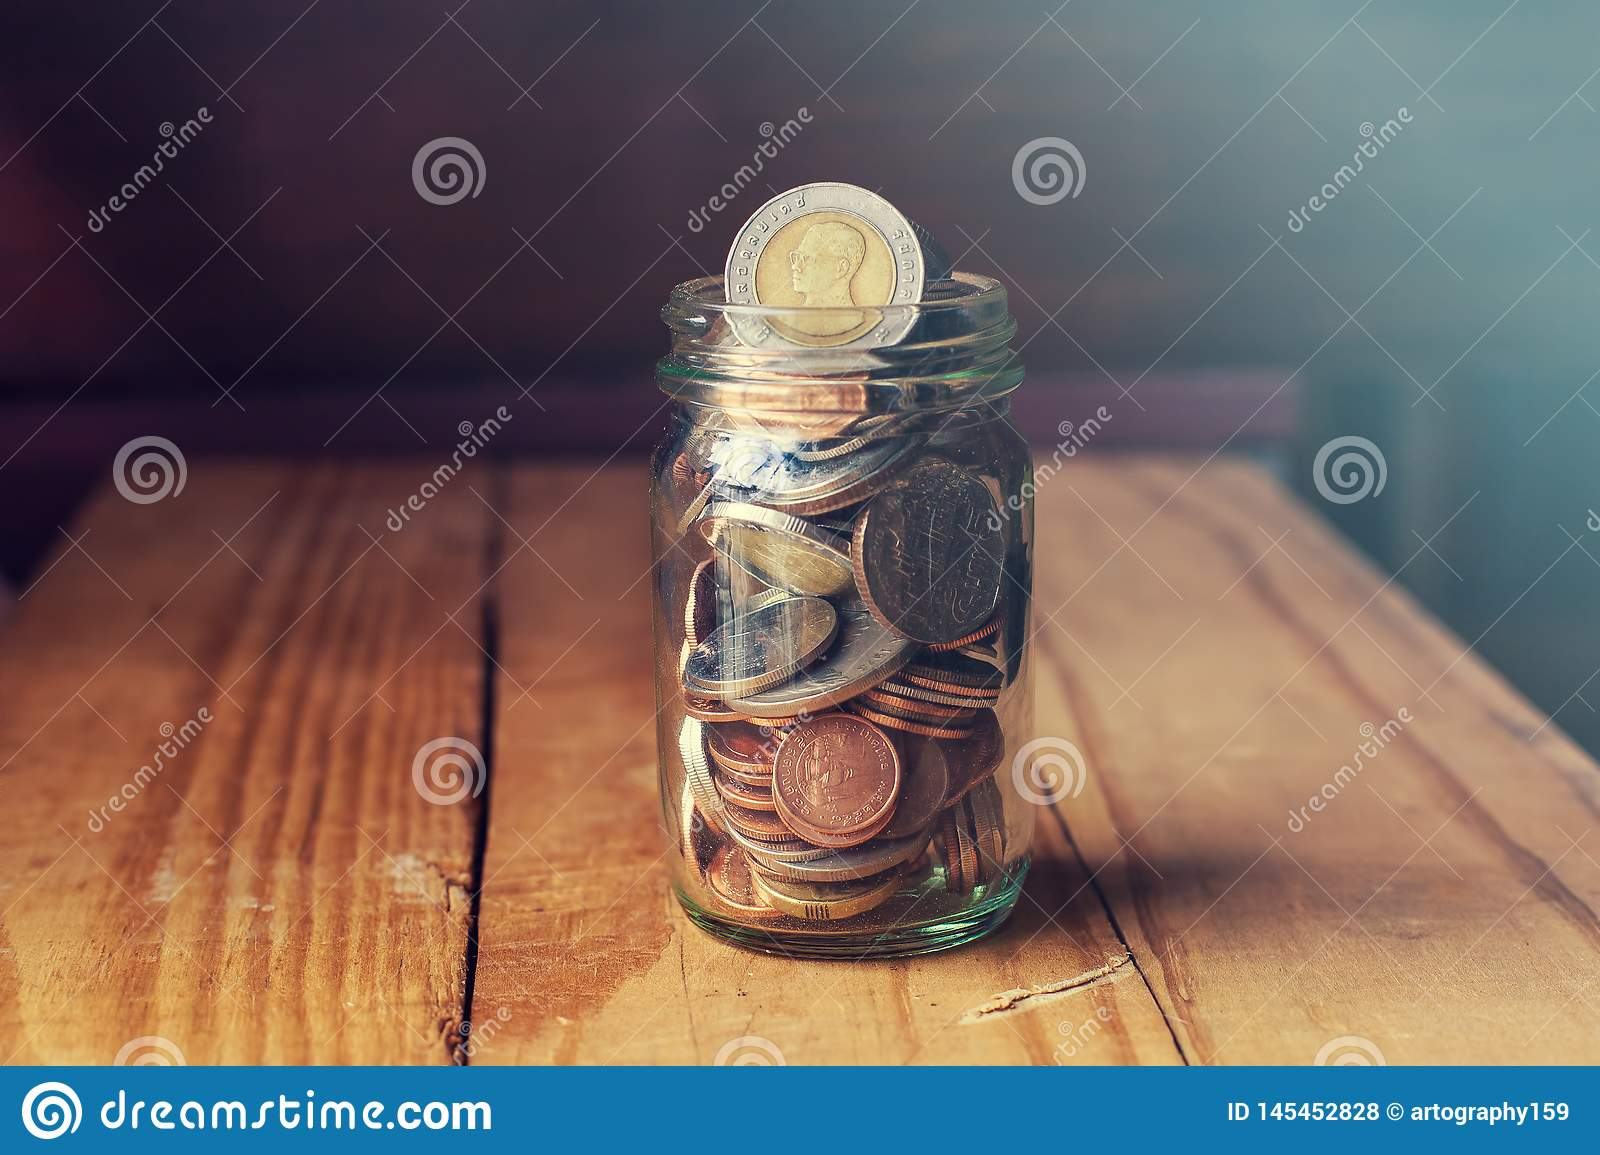 Coins in glass jar on wood table, Saving money concept.